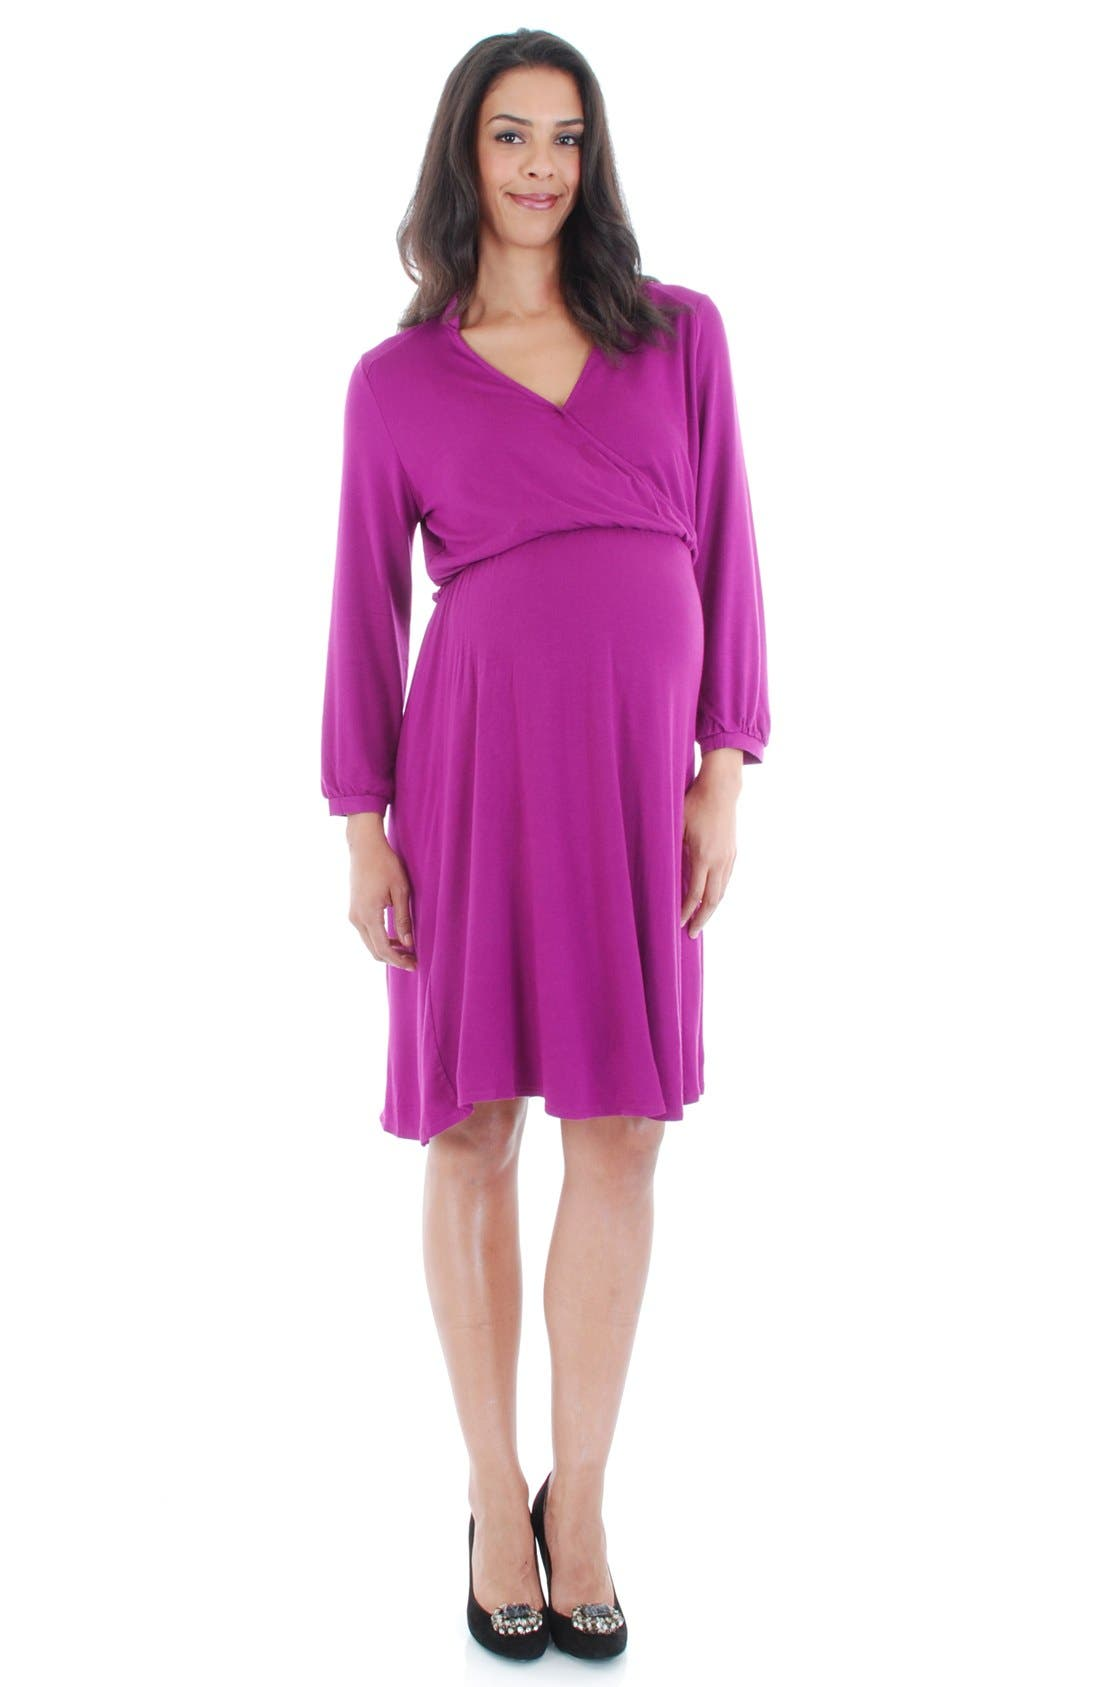 Everly Grey 'Sicily' Maternity/Nursing Dress,                         Main,                         color, Orchid